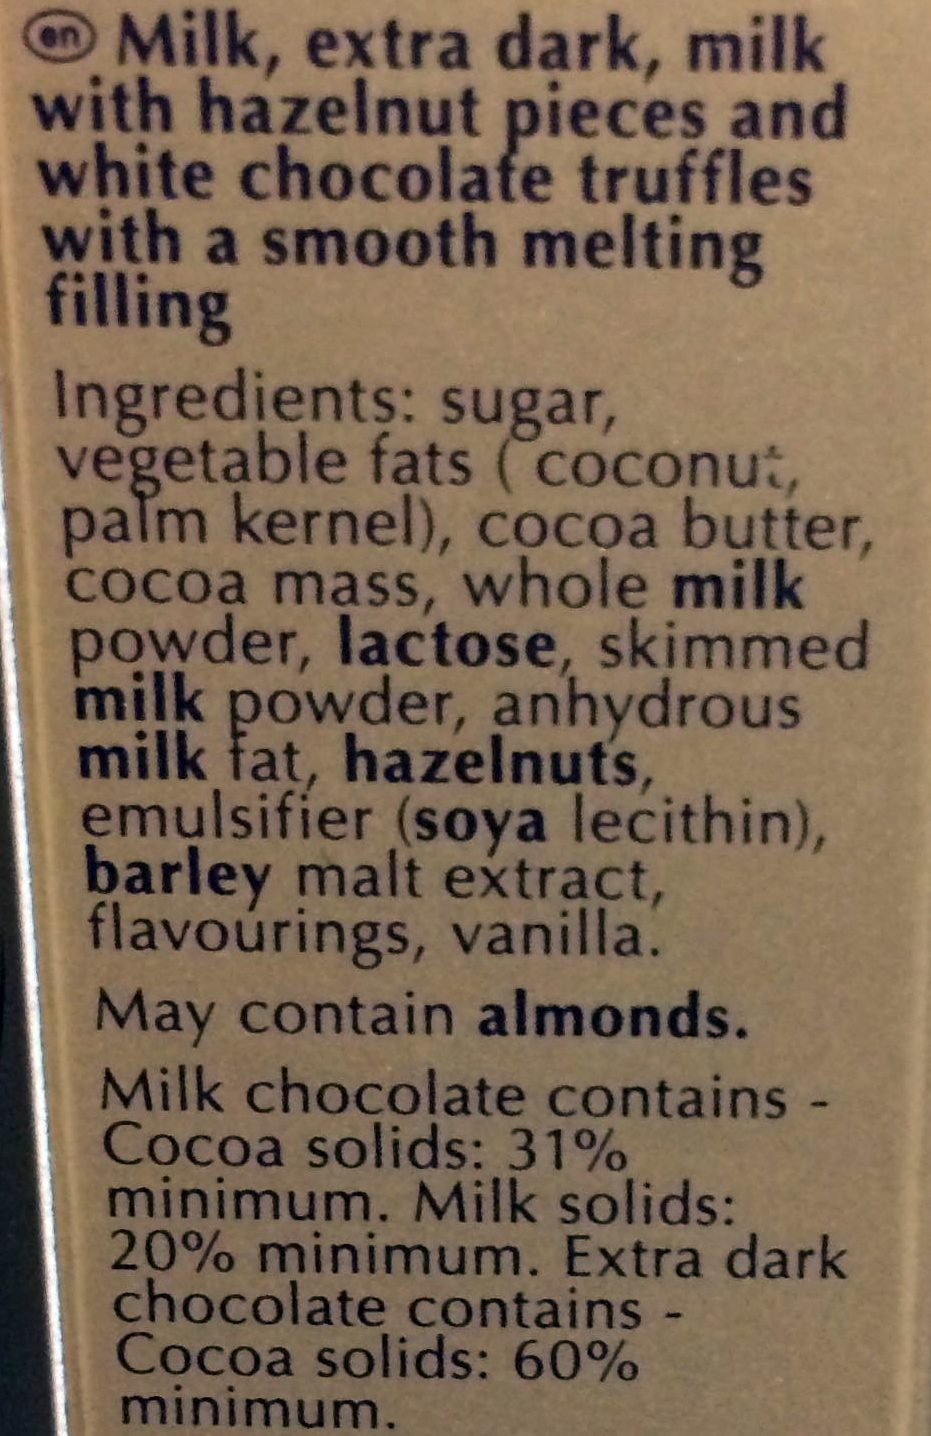 Milk, extra dark,mailk with hazelnuts pieces and white choclate truffles with a smooth melting filling - Ingredients